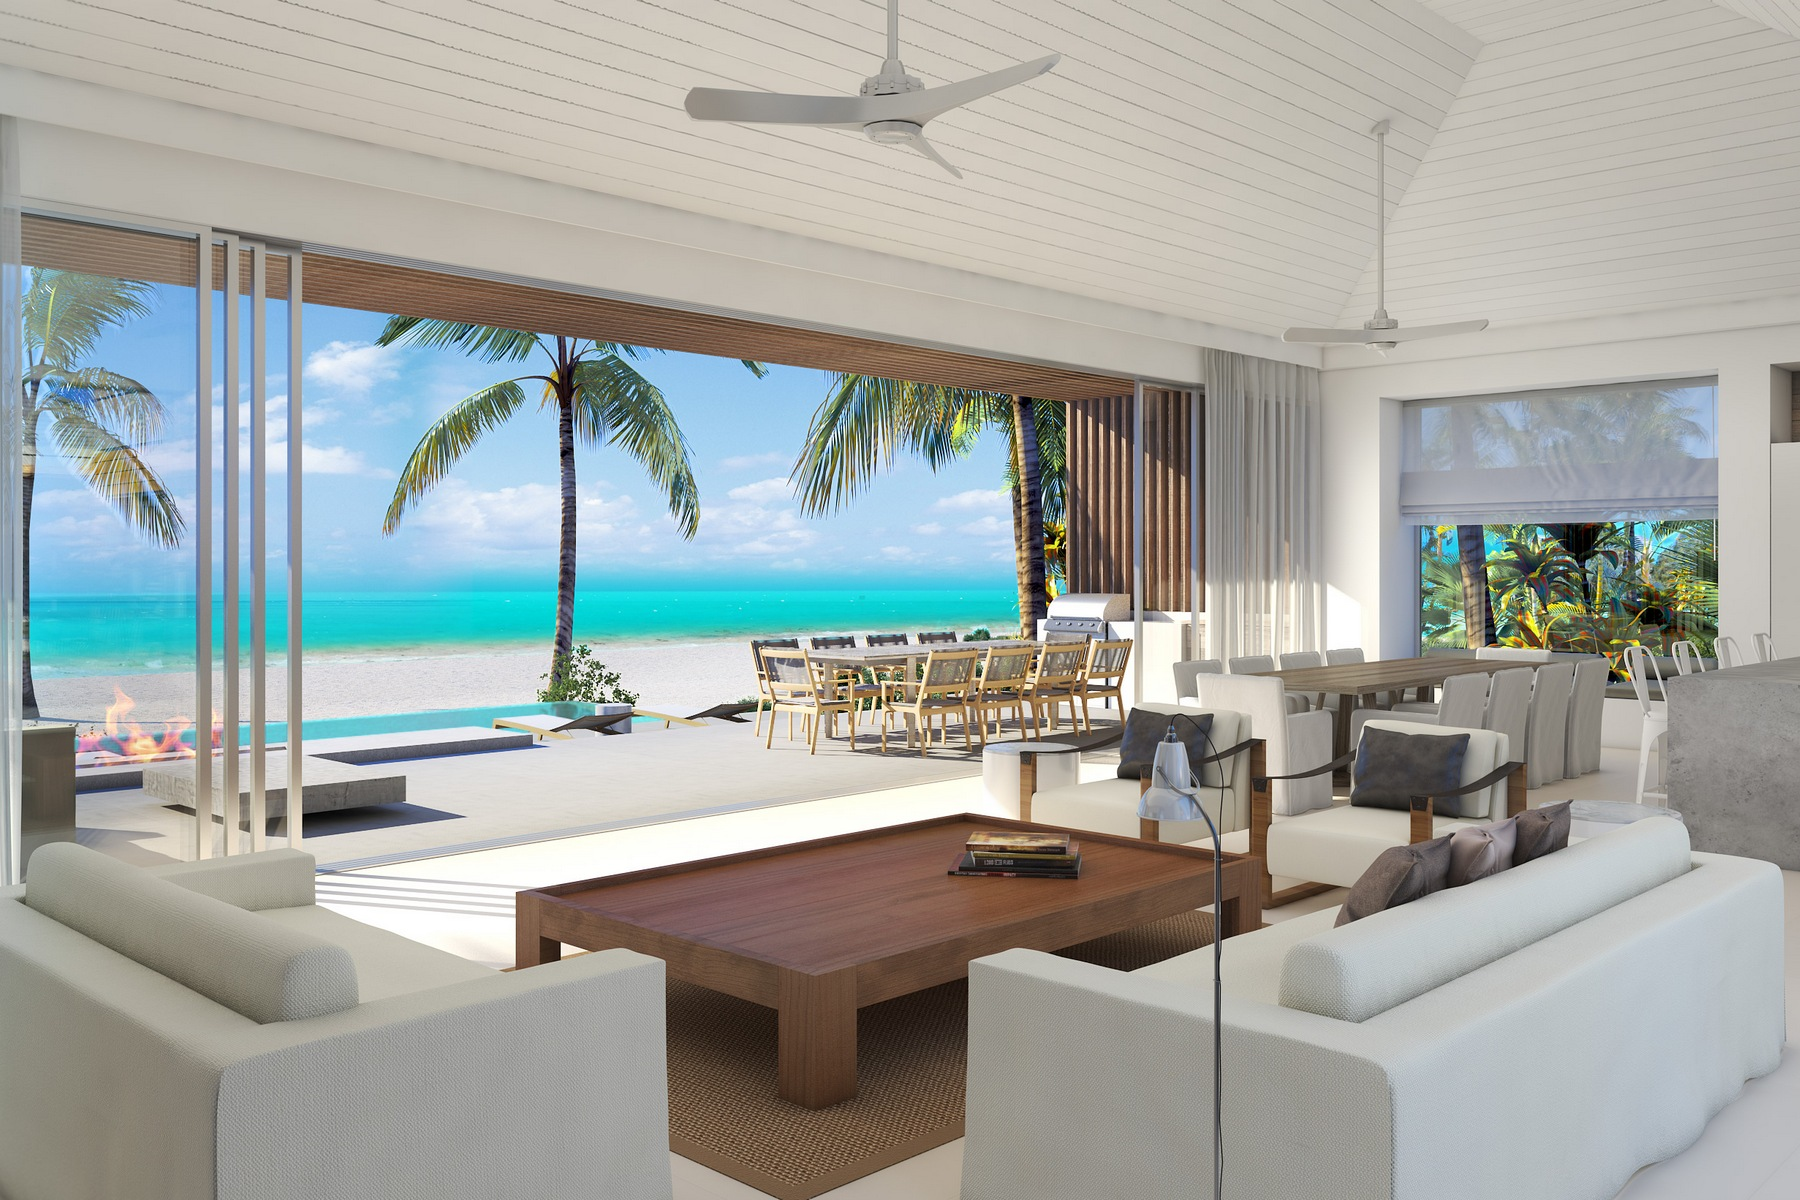 Single Family Home for Sale at BEACH ENCLAVE LONG BAY - Design One 5B Beachfront Long Bay, Providenciales, TCI Turks And Caicos Islands